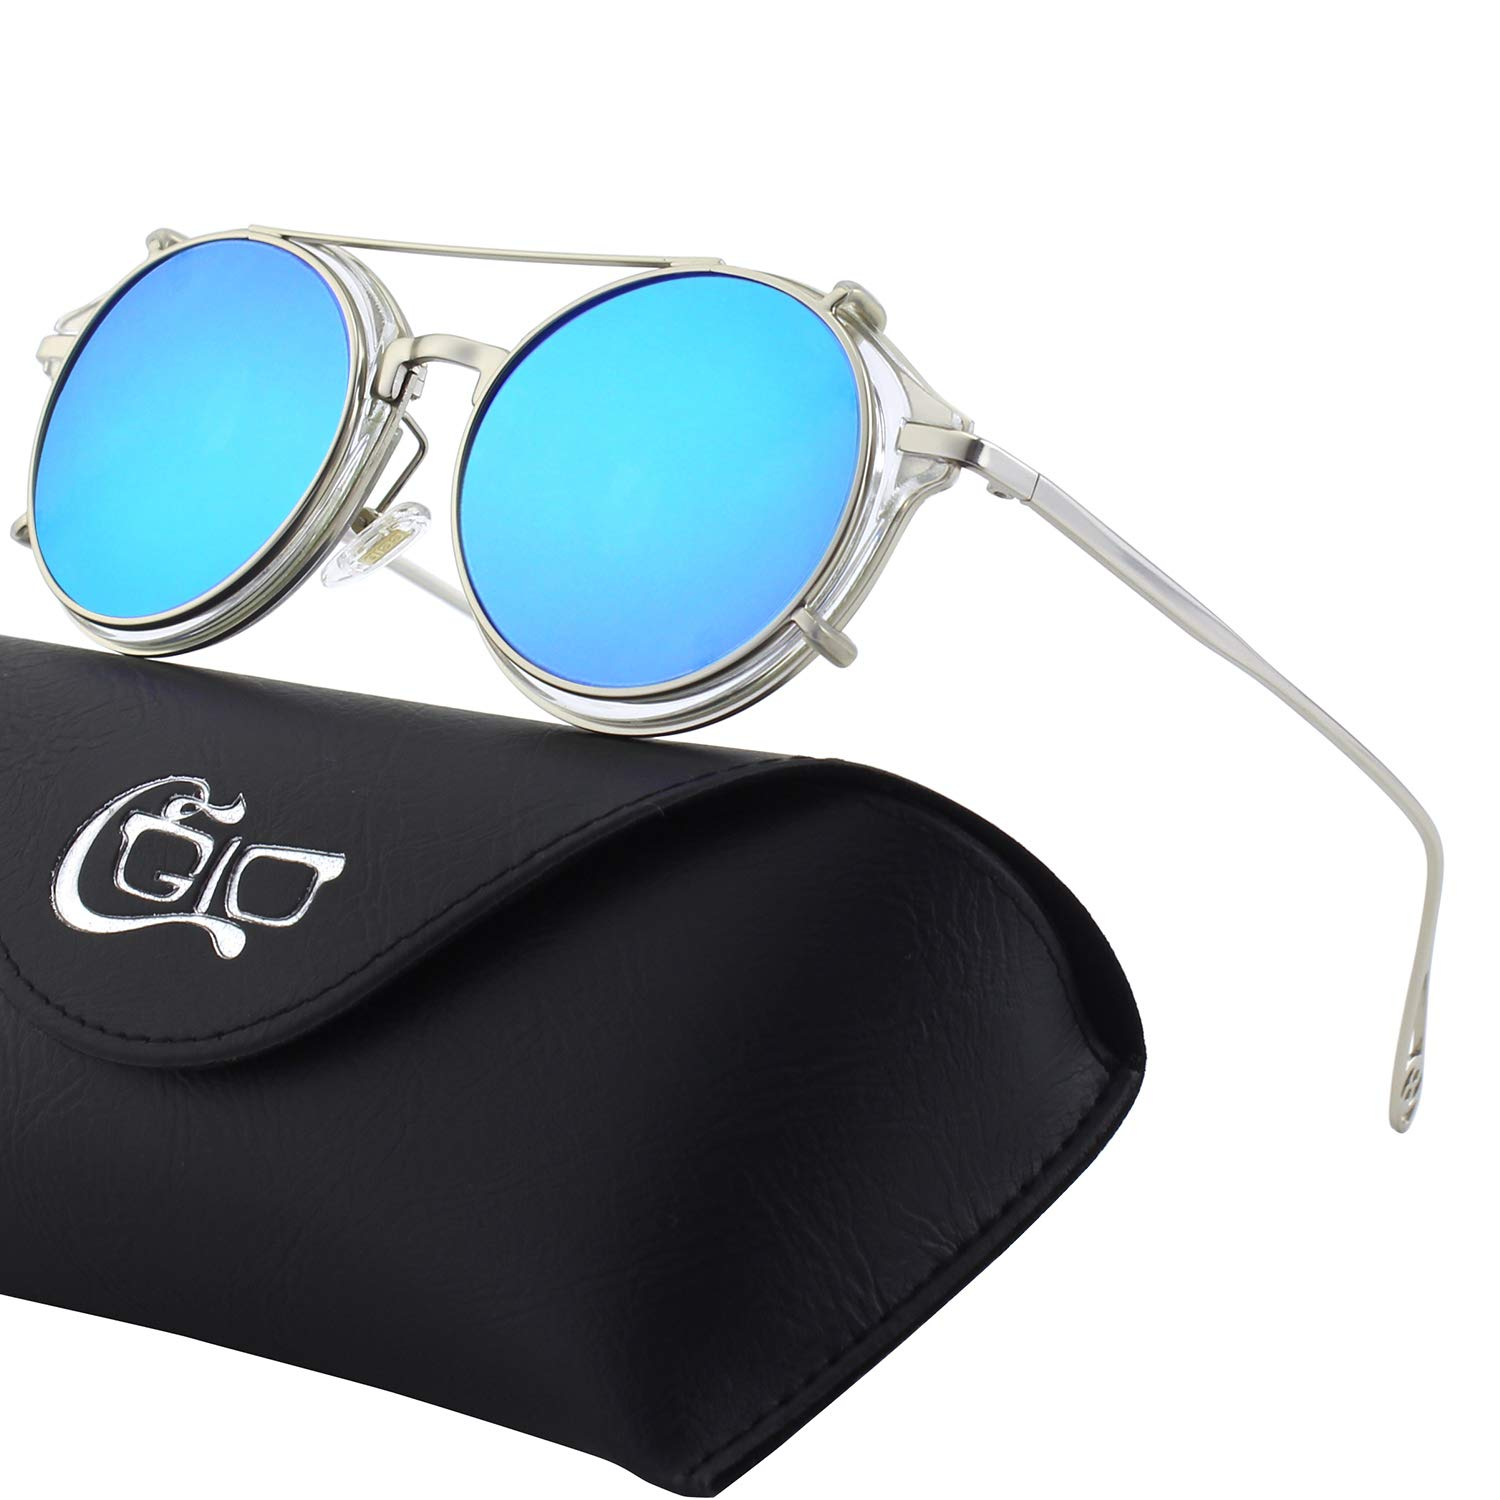 CGID E76 Clip on Sunglasses Polarized Steampunk Retro UV400 Round Men and women 18MJ576-4